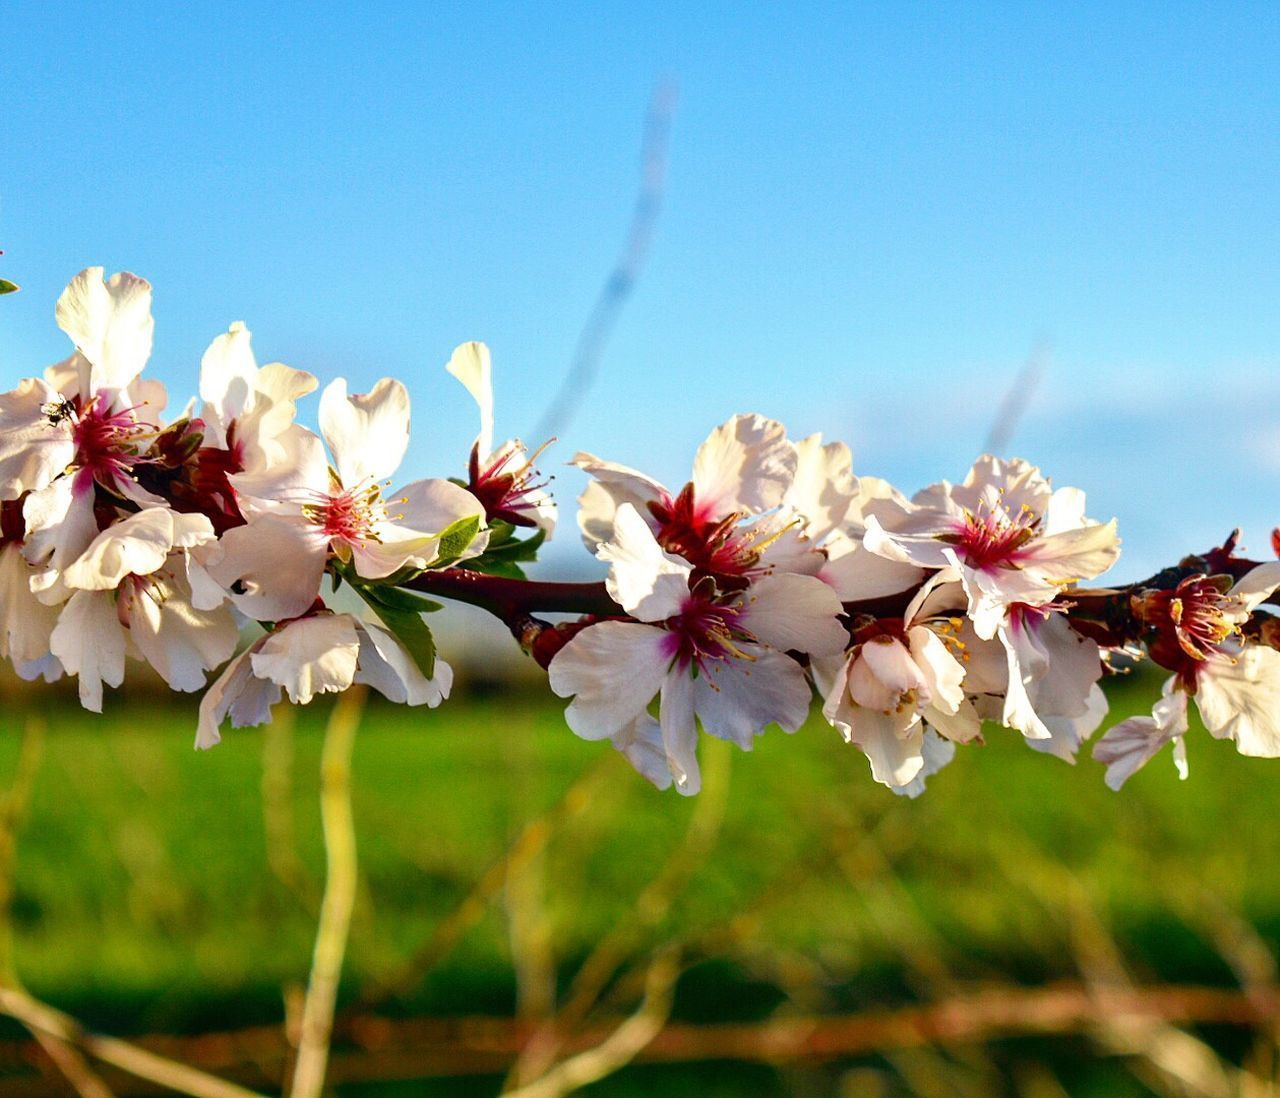 flower, fragility, beauty in nature, growth, nature, freshness, blossom, white color, botany, no people, tree, petal, springtime, apple blossom, day, close-up, flower head, outdoors, branch, blooming, sky